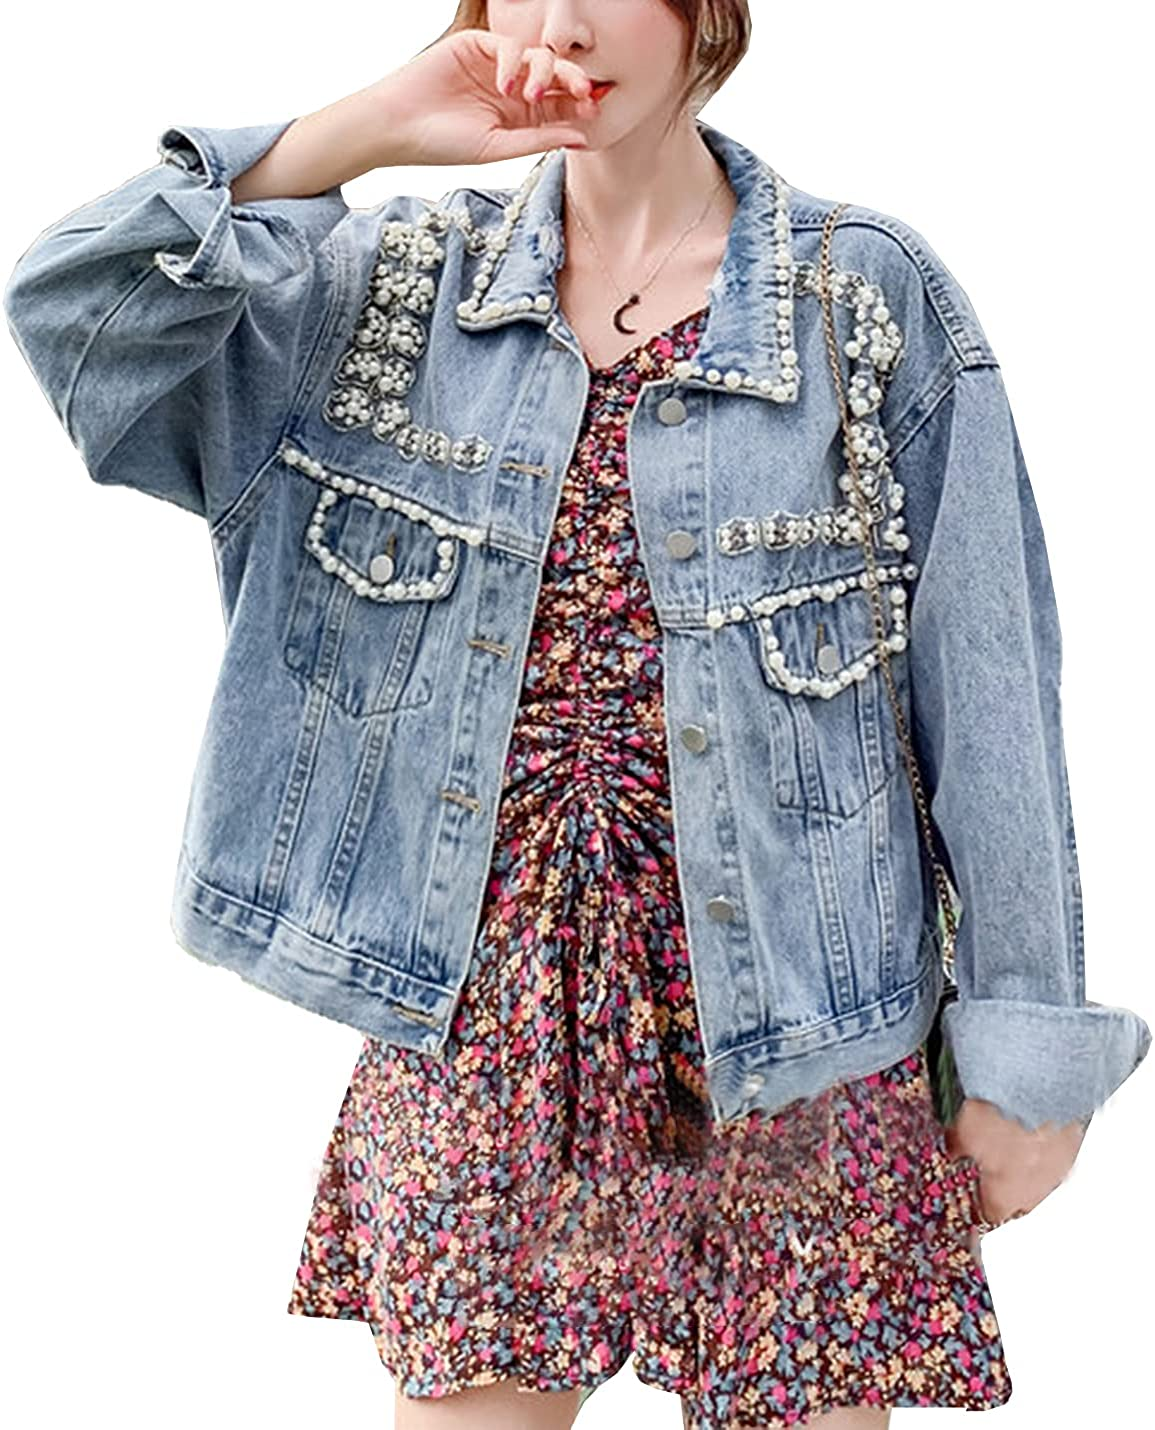 Kissonic Women's Embroidered Pearls Rivet Denim Jacket Casual Loose Cropped Jean Coat